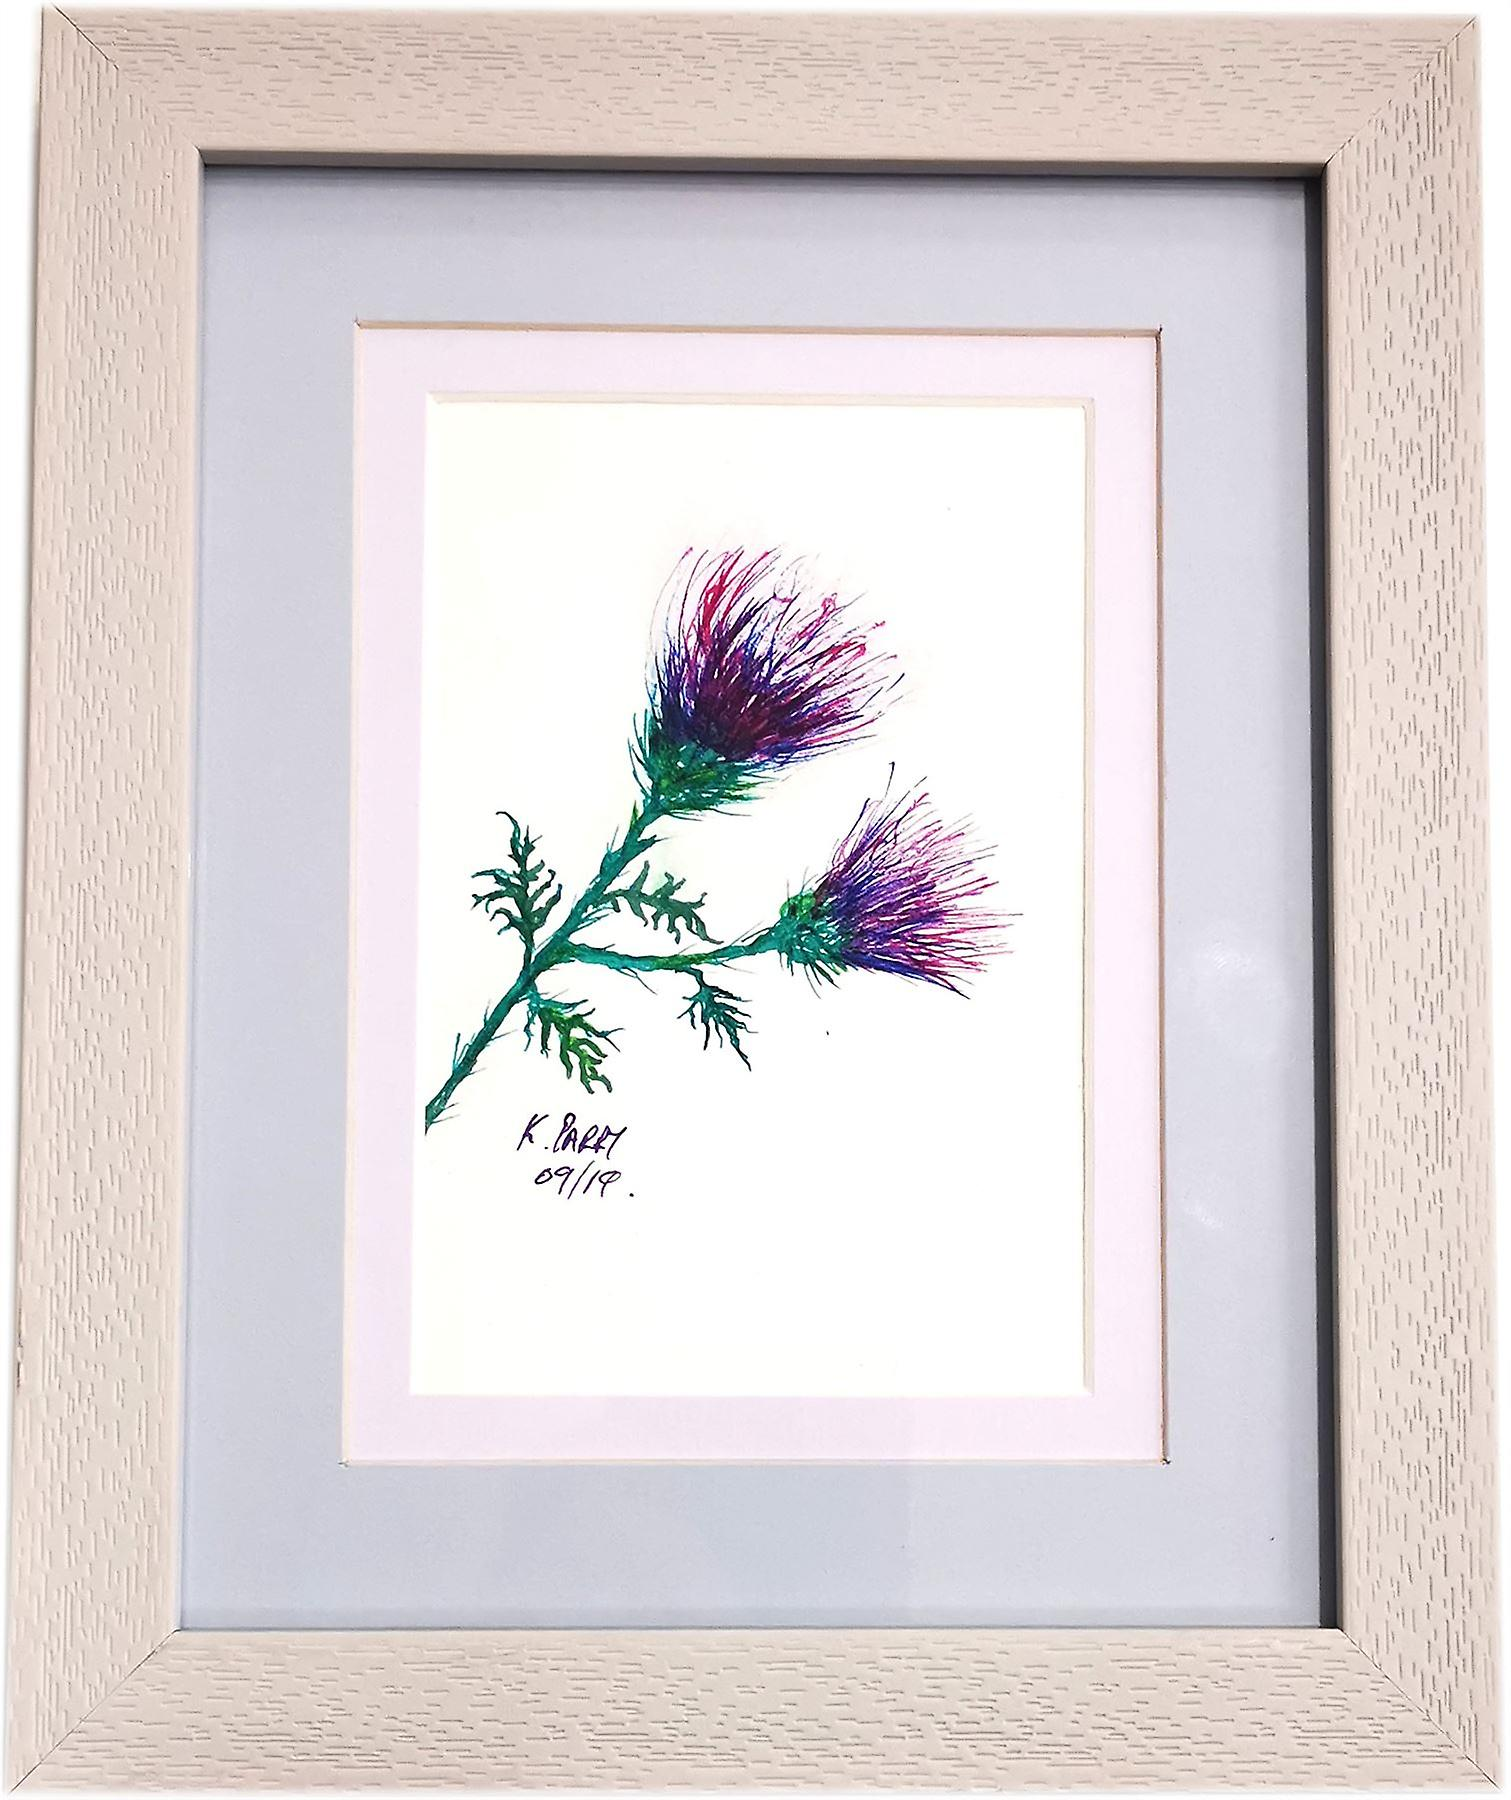 Keith Parry Artist Acrylic & Ink Thistle Painting Wood Frame